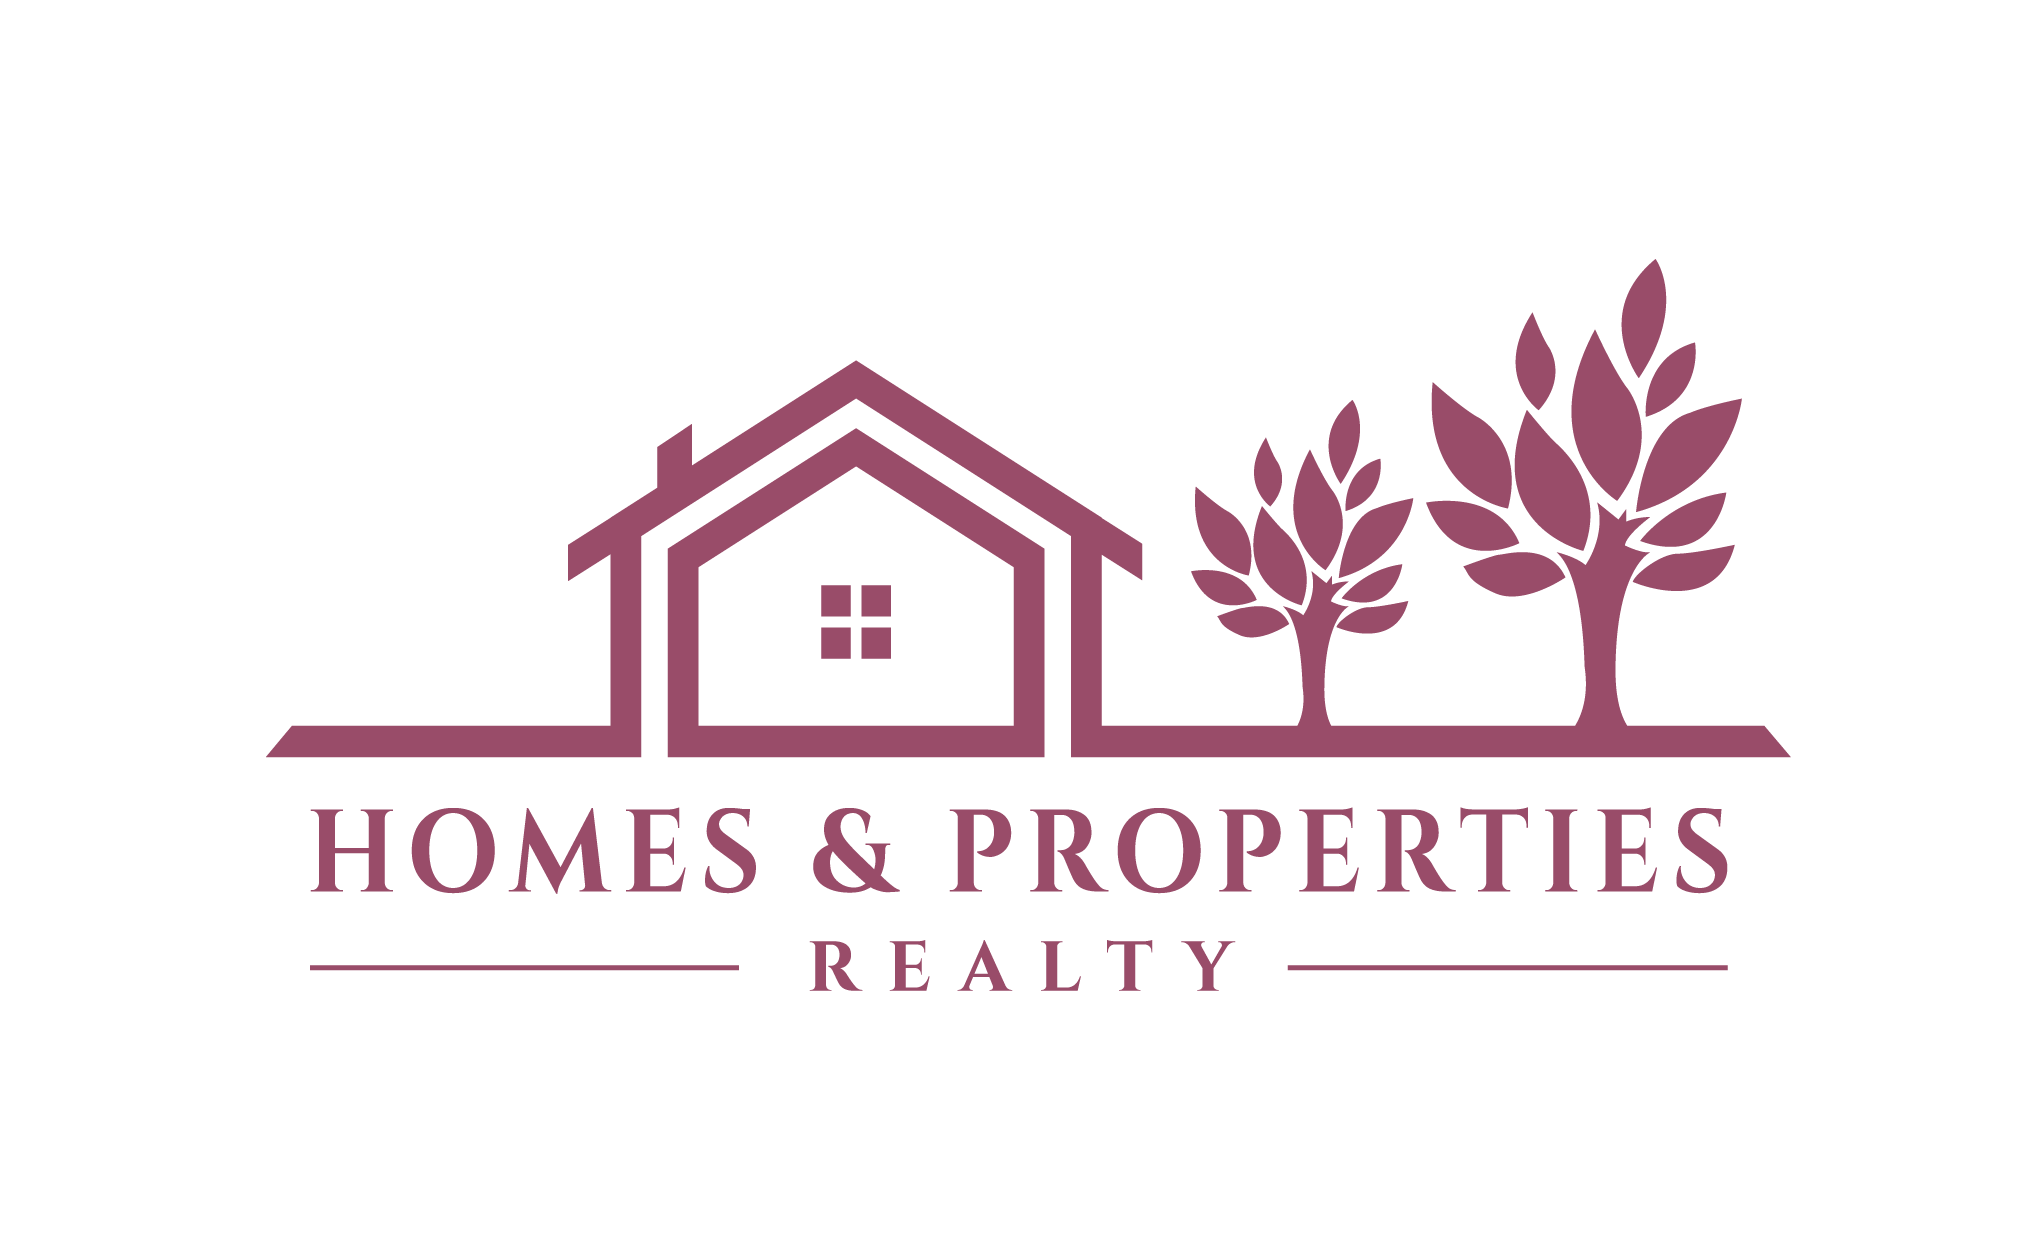 Homes and Properties Realty